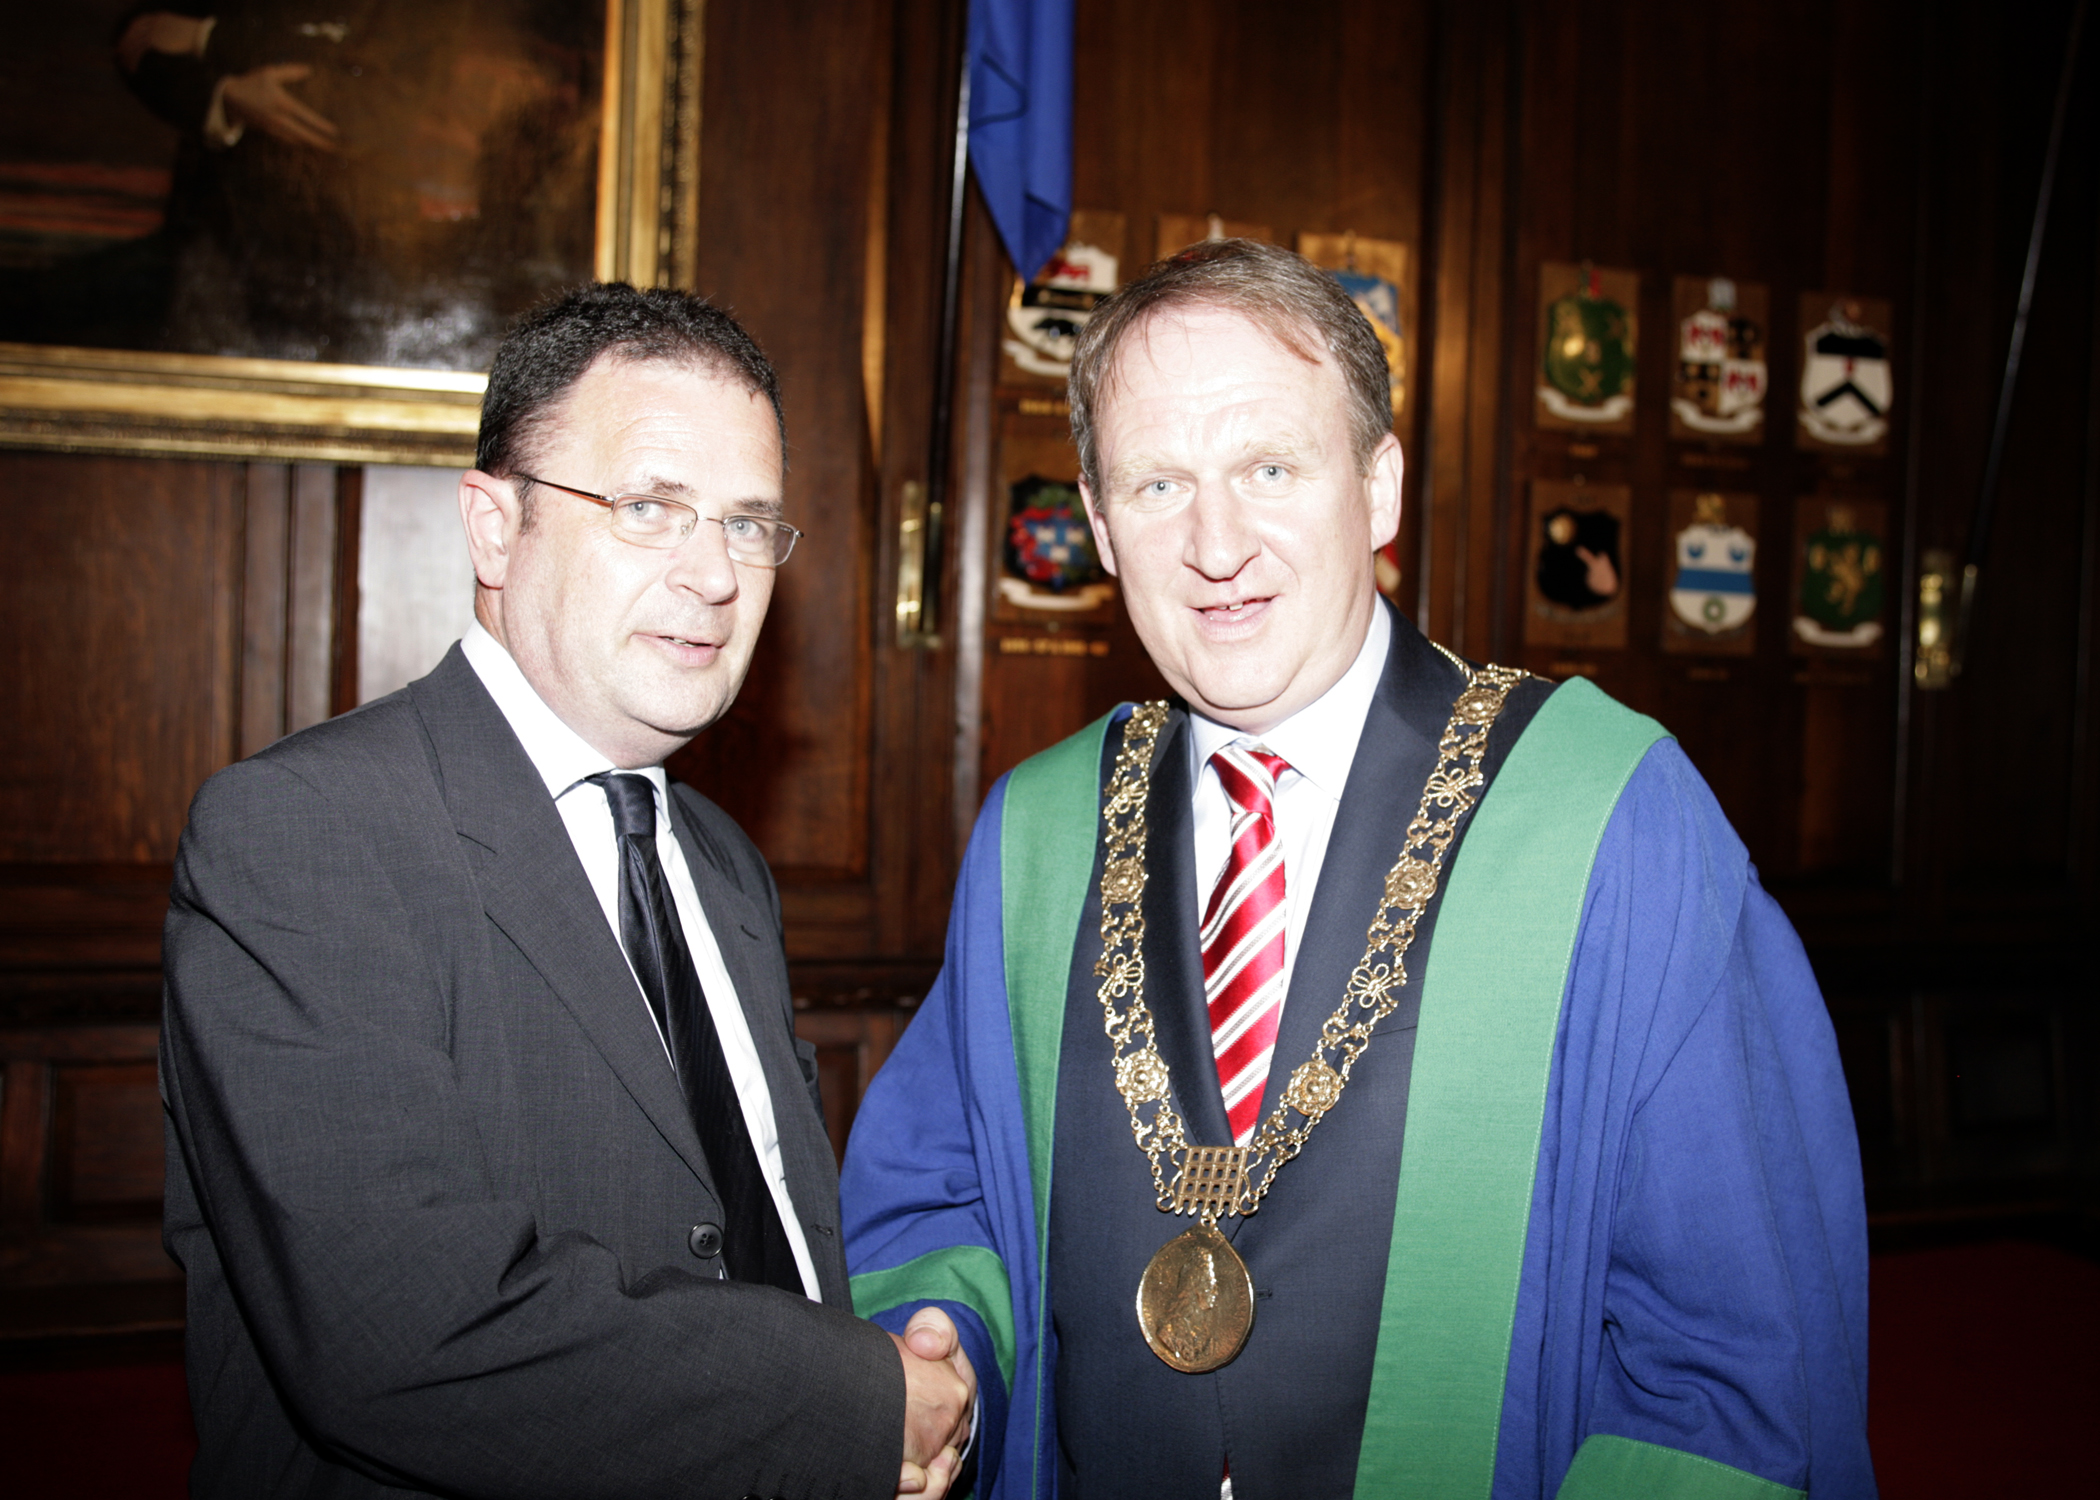 Ruairi with Gerry Breen Lord Mayor